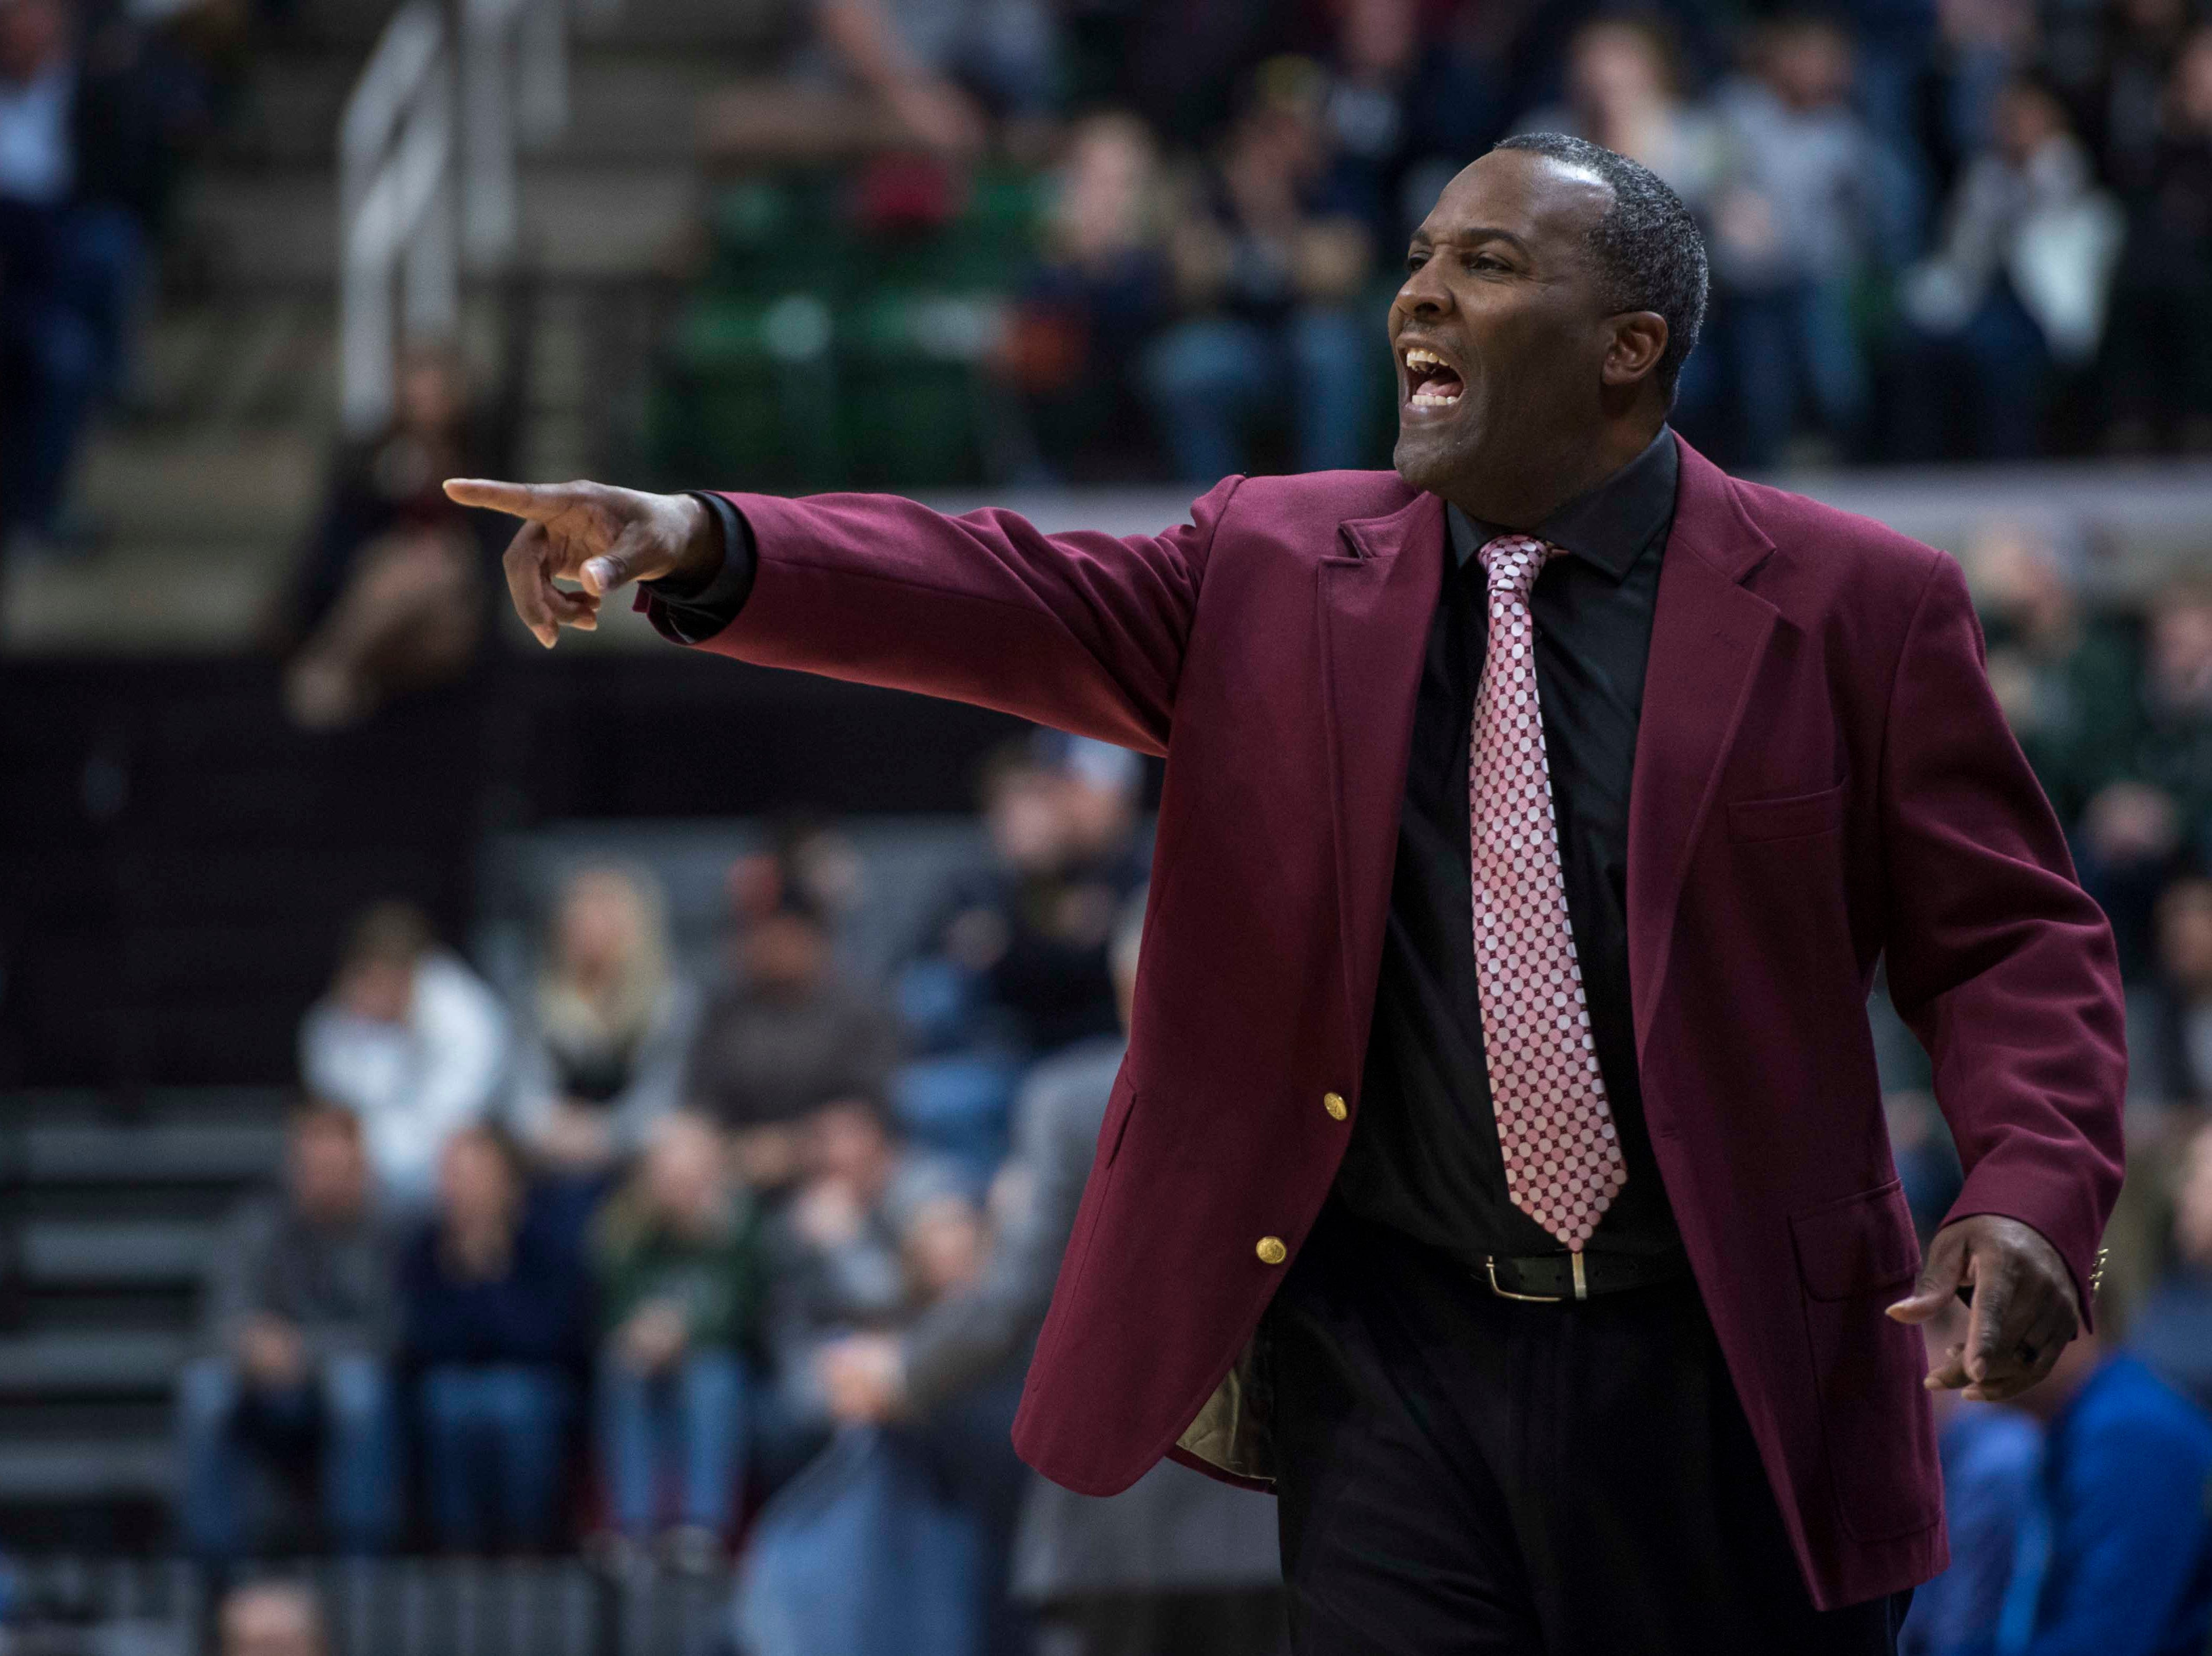 River Rouge's head coach Lamonta Stone yells in the second half. *** Hudsonville Unity Christian defeated River Rouge 58-55 in the MHSAA Div. 2 championship game at Breslin Center in East Lansing on Saturday, March 16, 2019. (Nic Antaya, Special to The Detroit News)